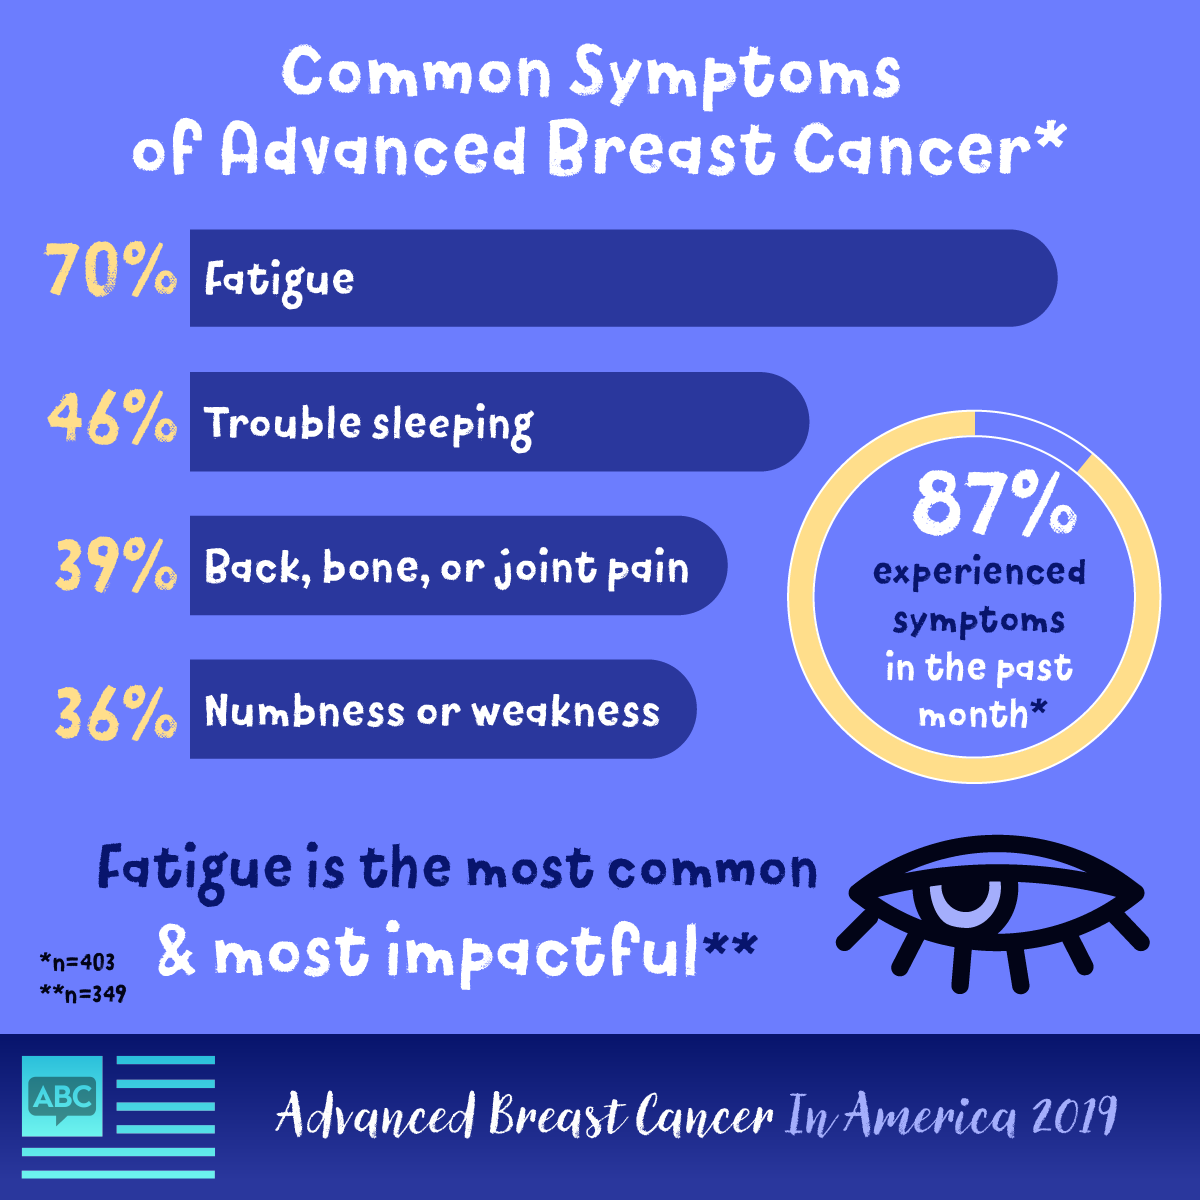 87% of people with advanced breast cancer experienced symptoms in the past month, with fatigue as the most common and impactful.